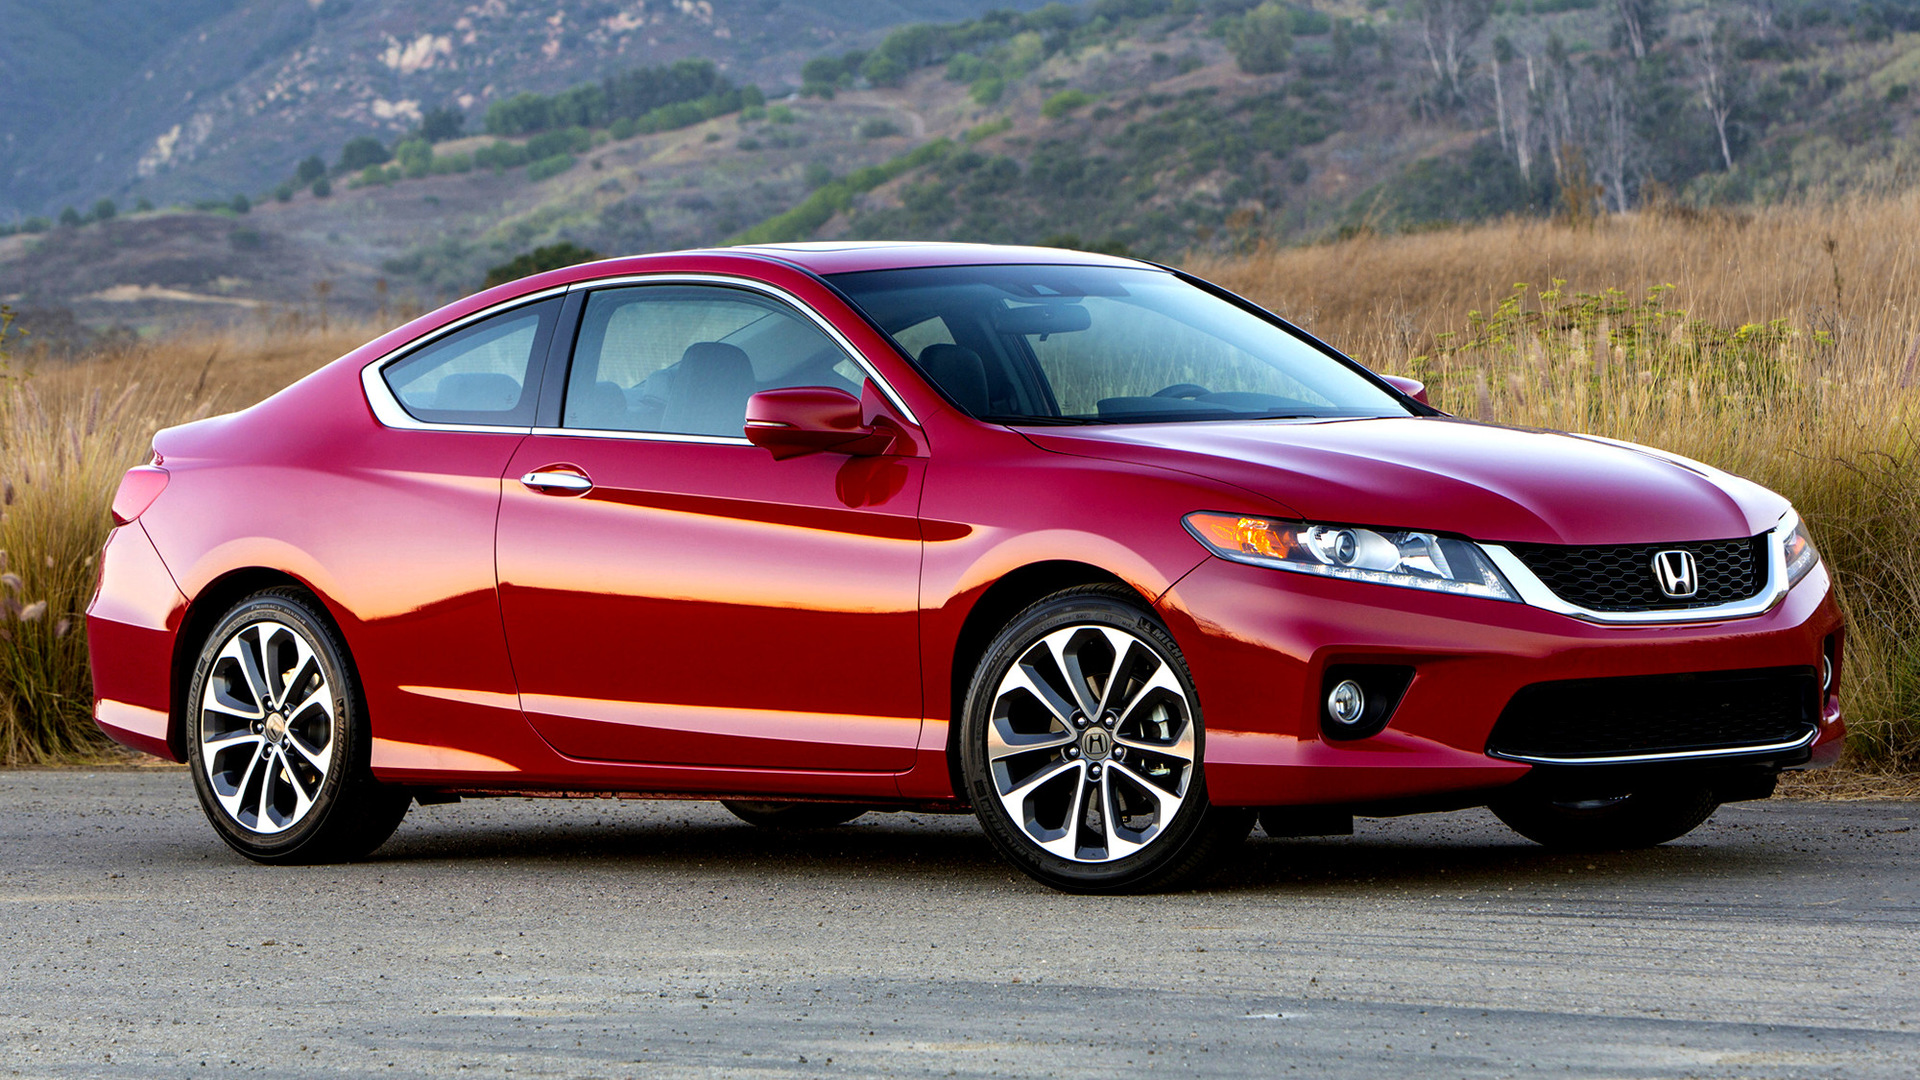 Honda Accord Coupe Ex L V6 >> 2012 Honda Accord EX-L V6 Coupe - Wallpapers and HD Images ...